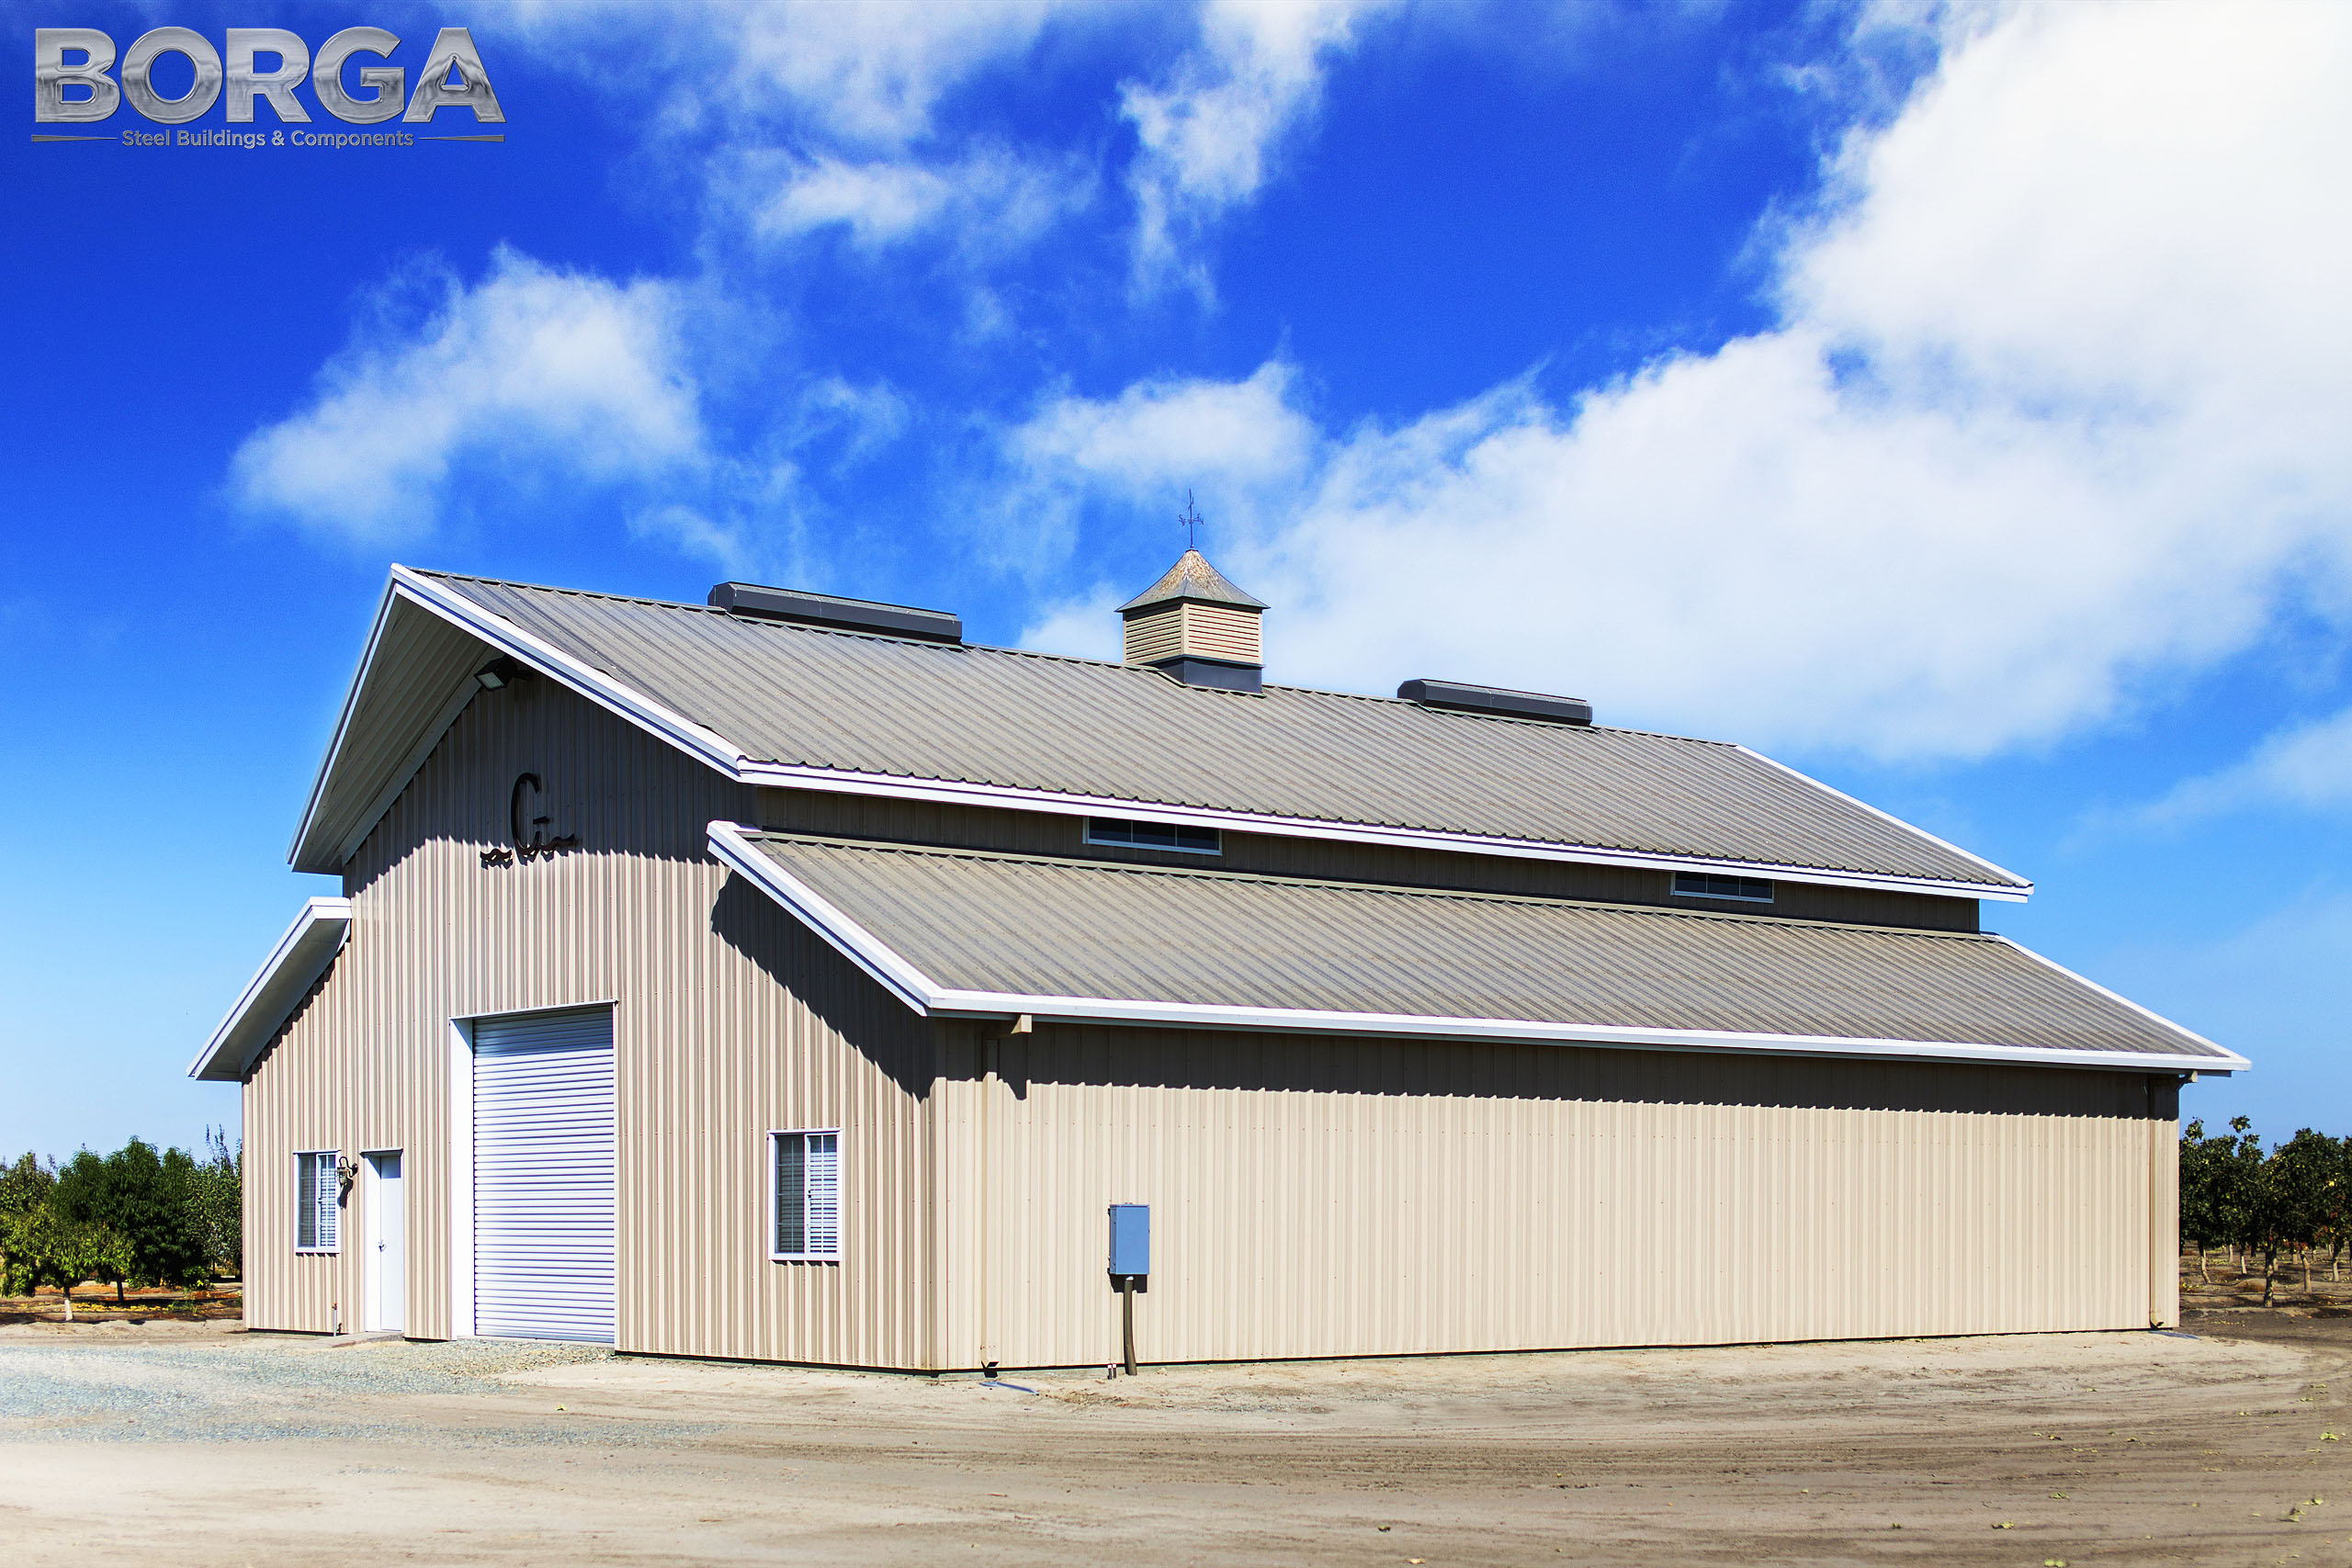 borga steel buildings components gilkey farms corcoran ca central valley metal agriculture tan white rca raised center aisle 5